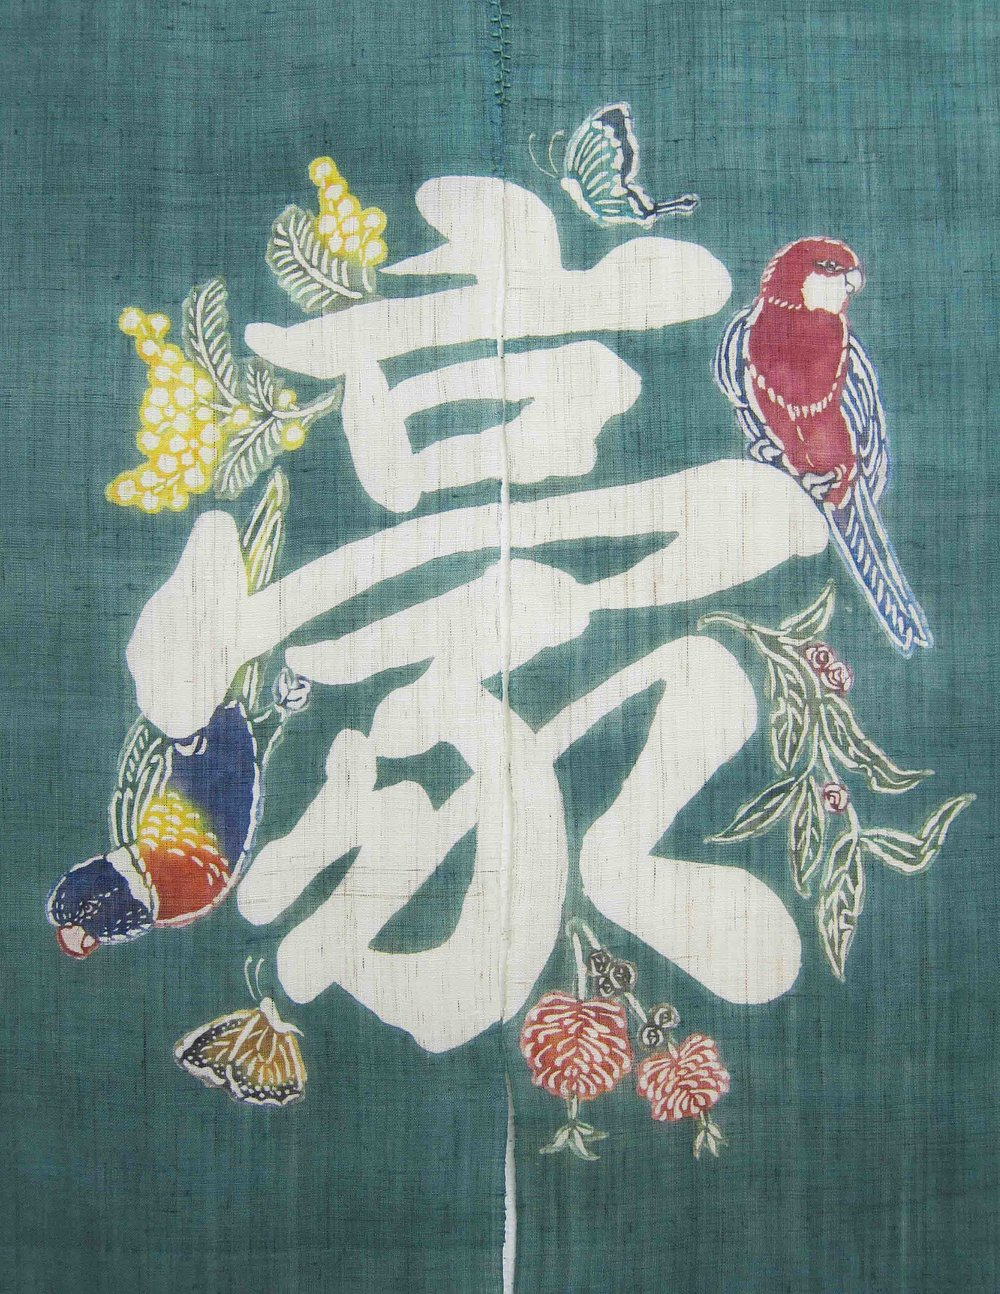 Australia Noren 2011 katazome on linen. Central Character is the Japanese Kanji Character for Australia, pronounced goh.